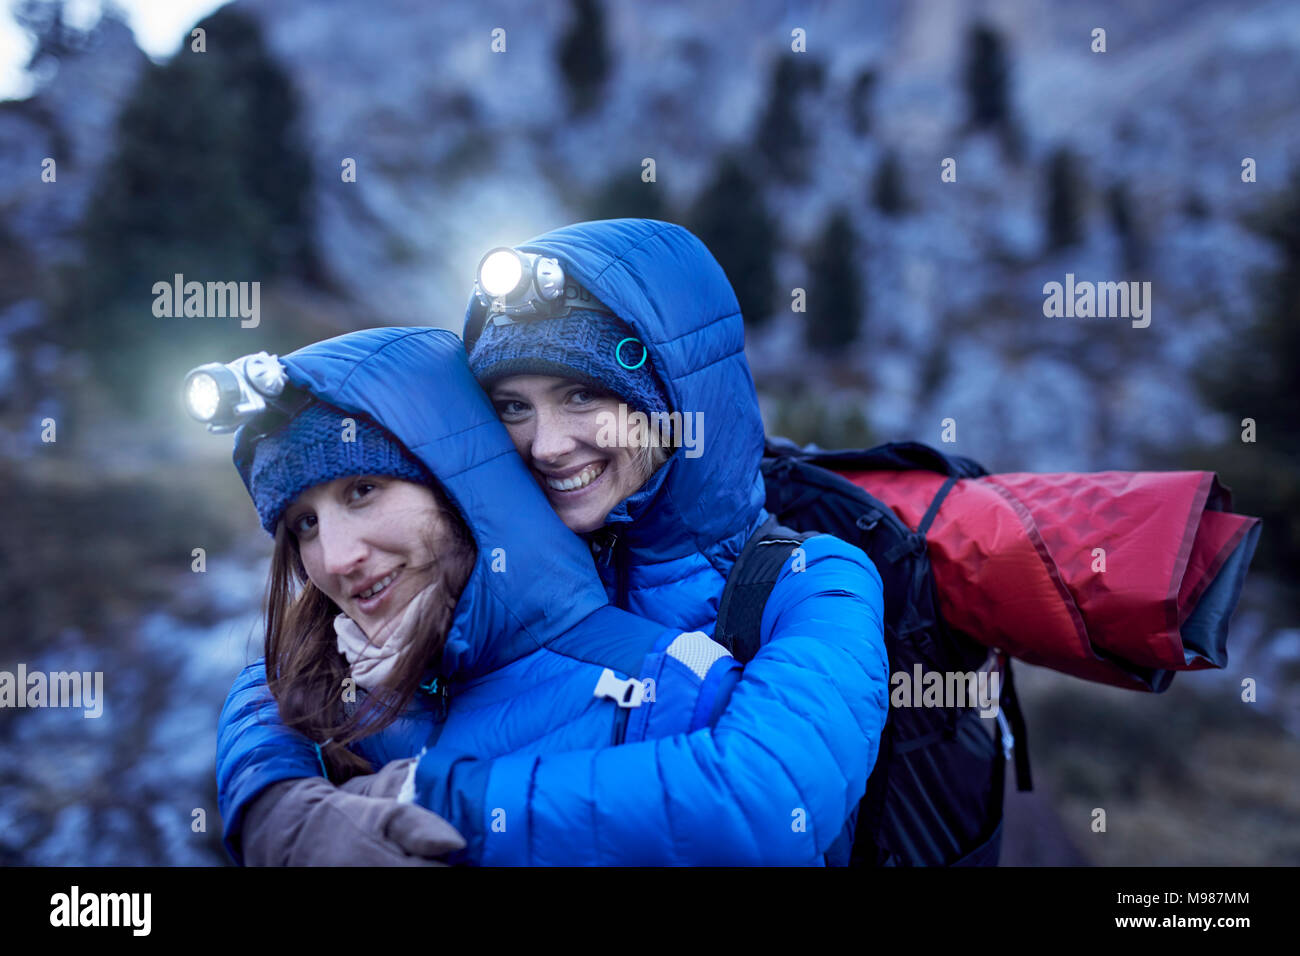 Two happy young women wearing headlamps embracing in the mountains - Stock Image